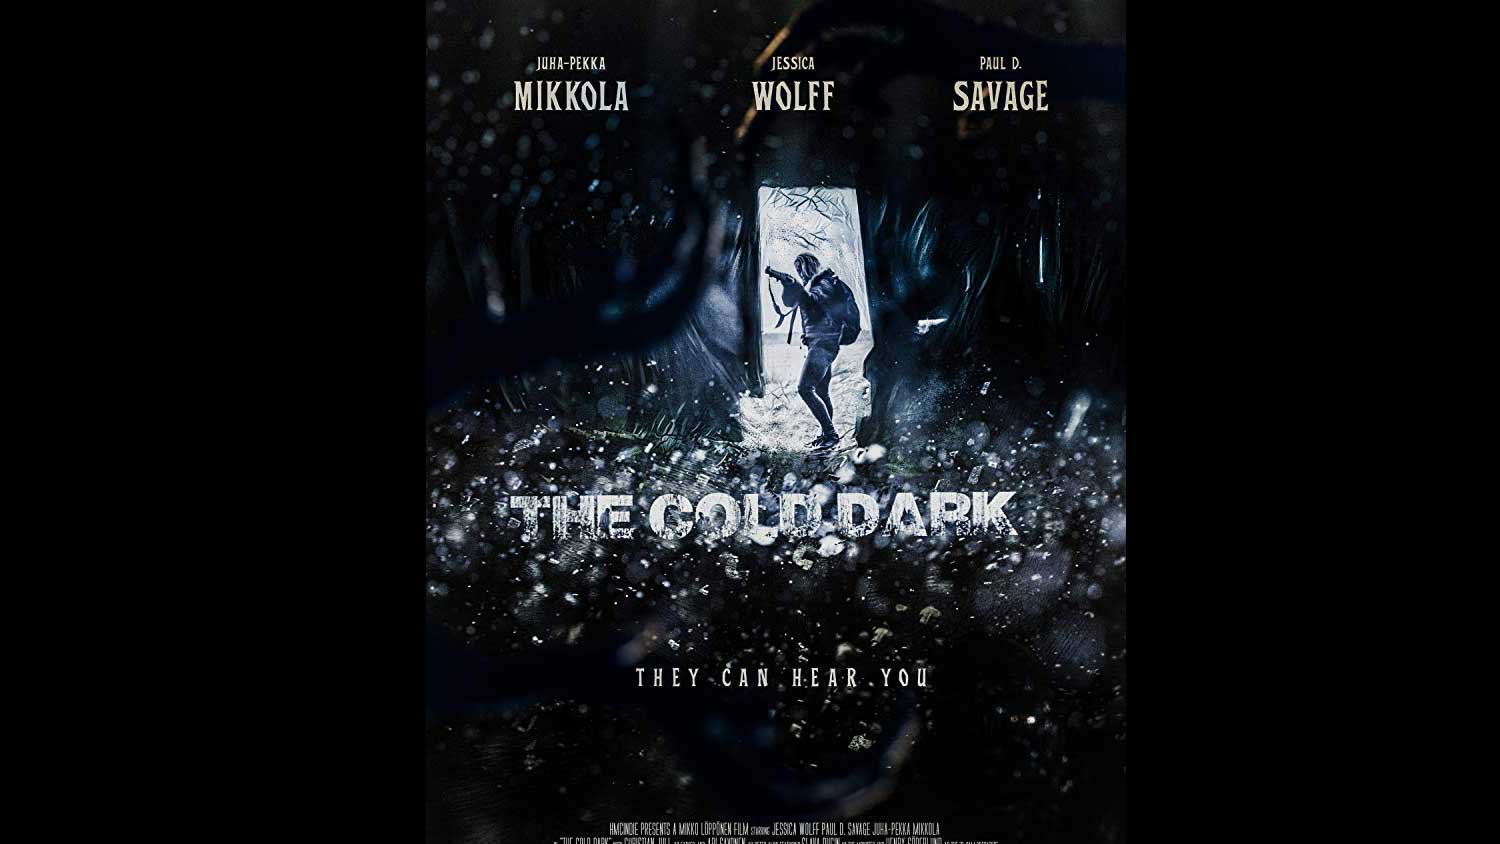 The Cold Dark Review – A Cold Dark Post Apocalyptic Piece - OC Movie Reviews - Movie Reviews, Movie News, Documentary Reviews, Short Films, Short Film Reviews, Trailers, Movie Trailers, Interviews, film reviews, film news, hollywood, indie films, documentaries